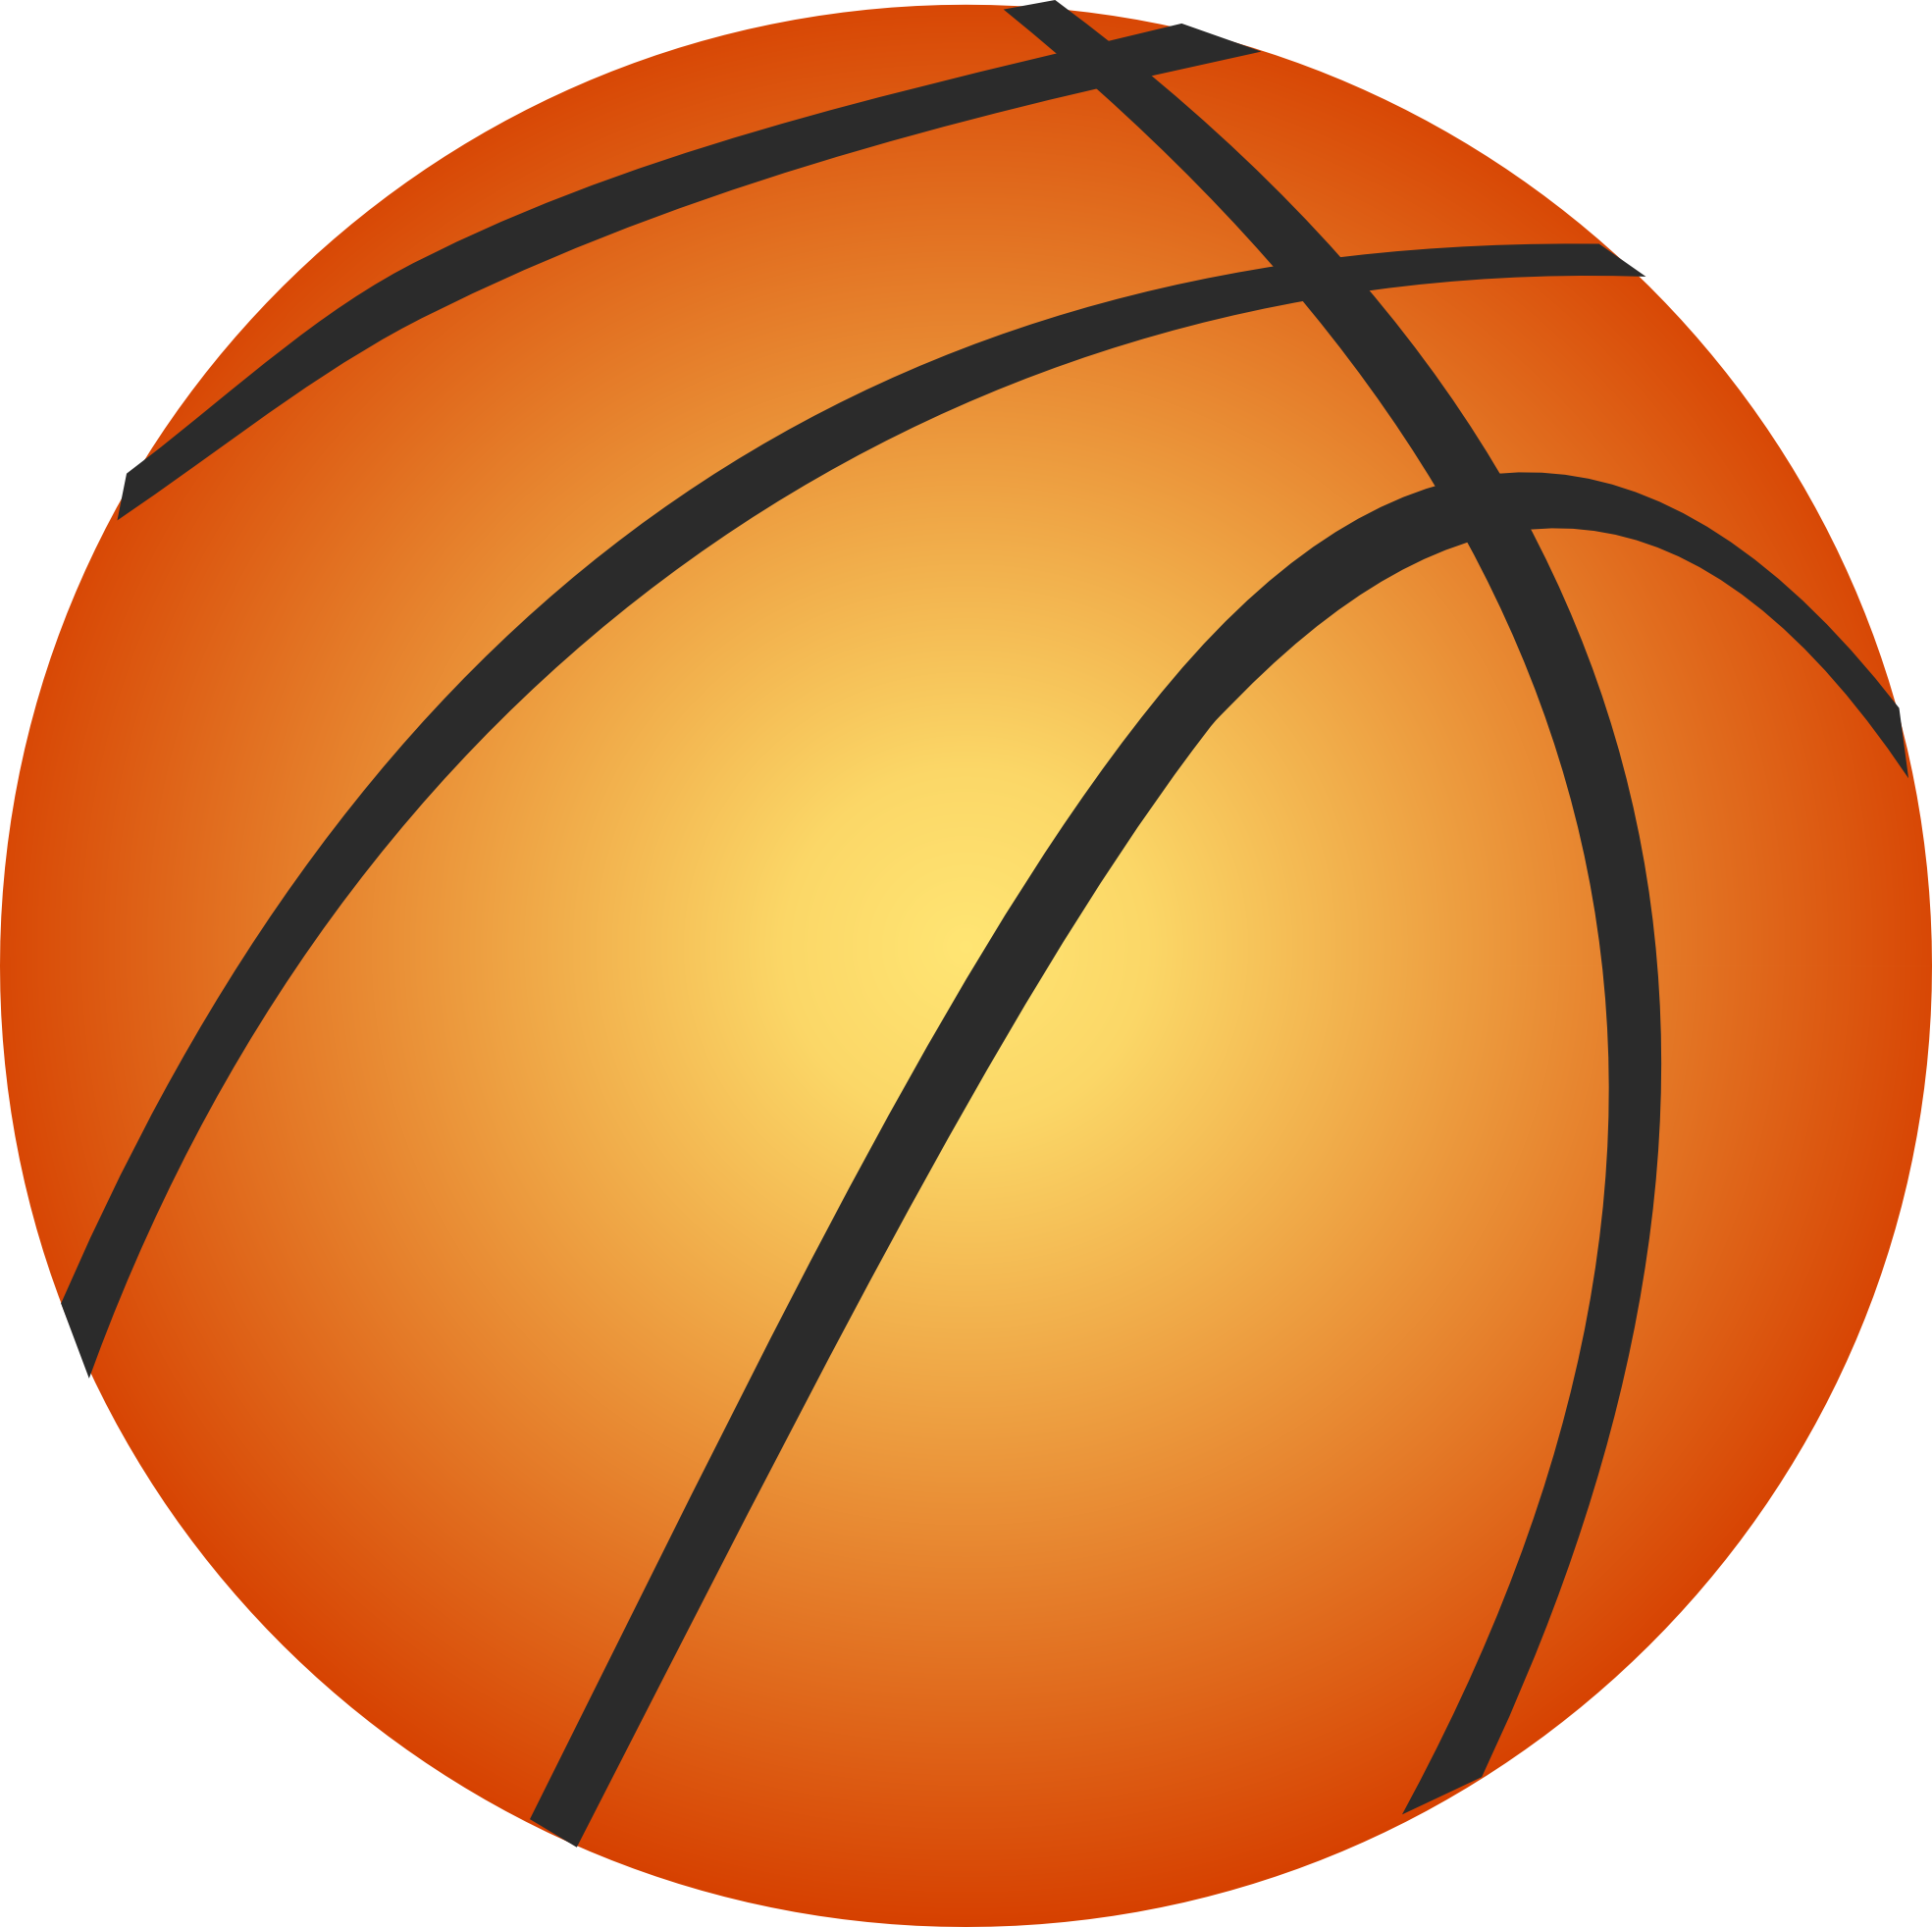 Basketball Net Clipart   Clipart Panda - Free Clipart Images